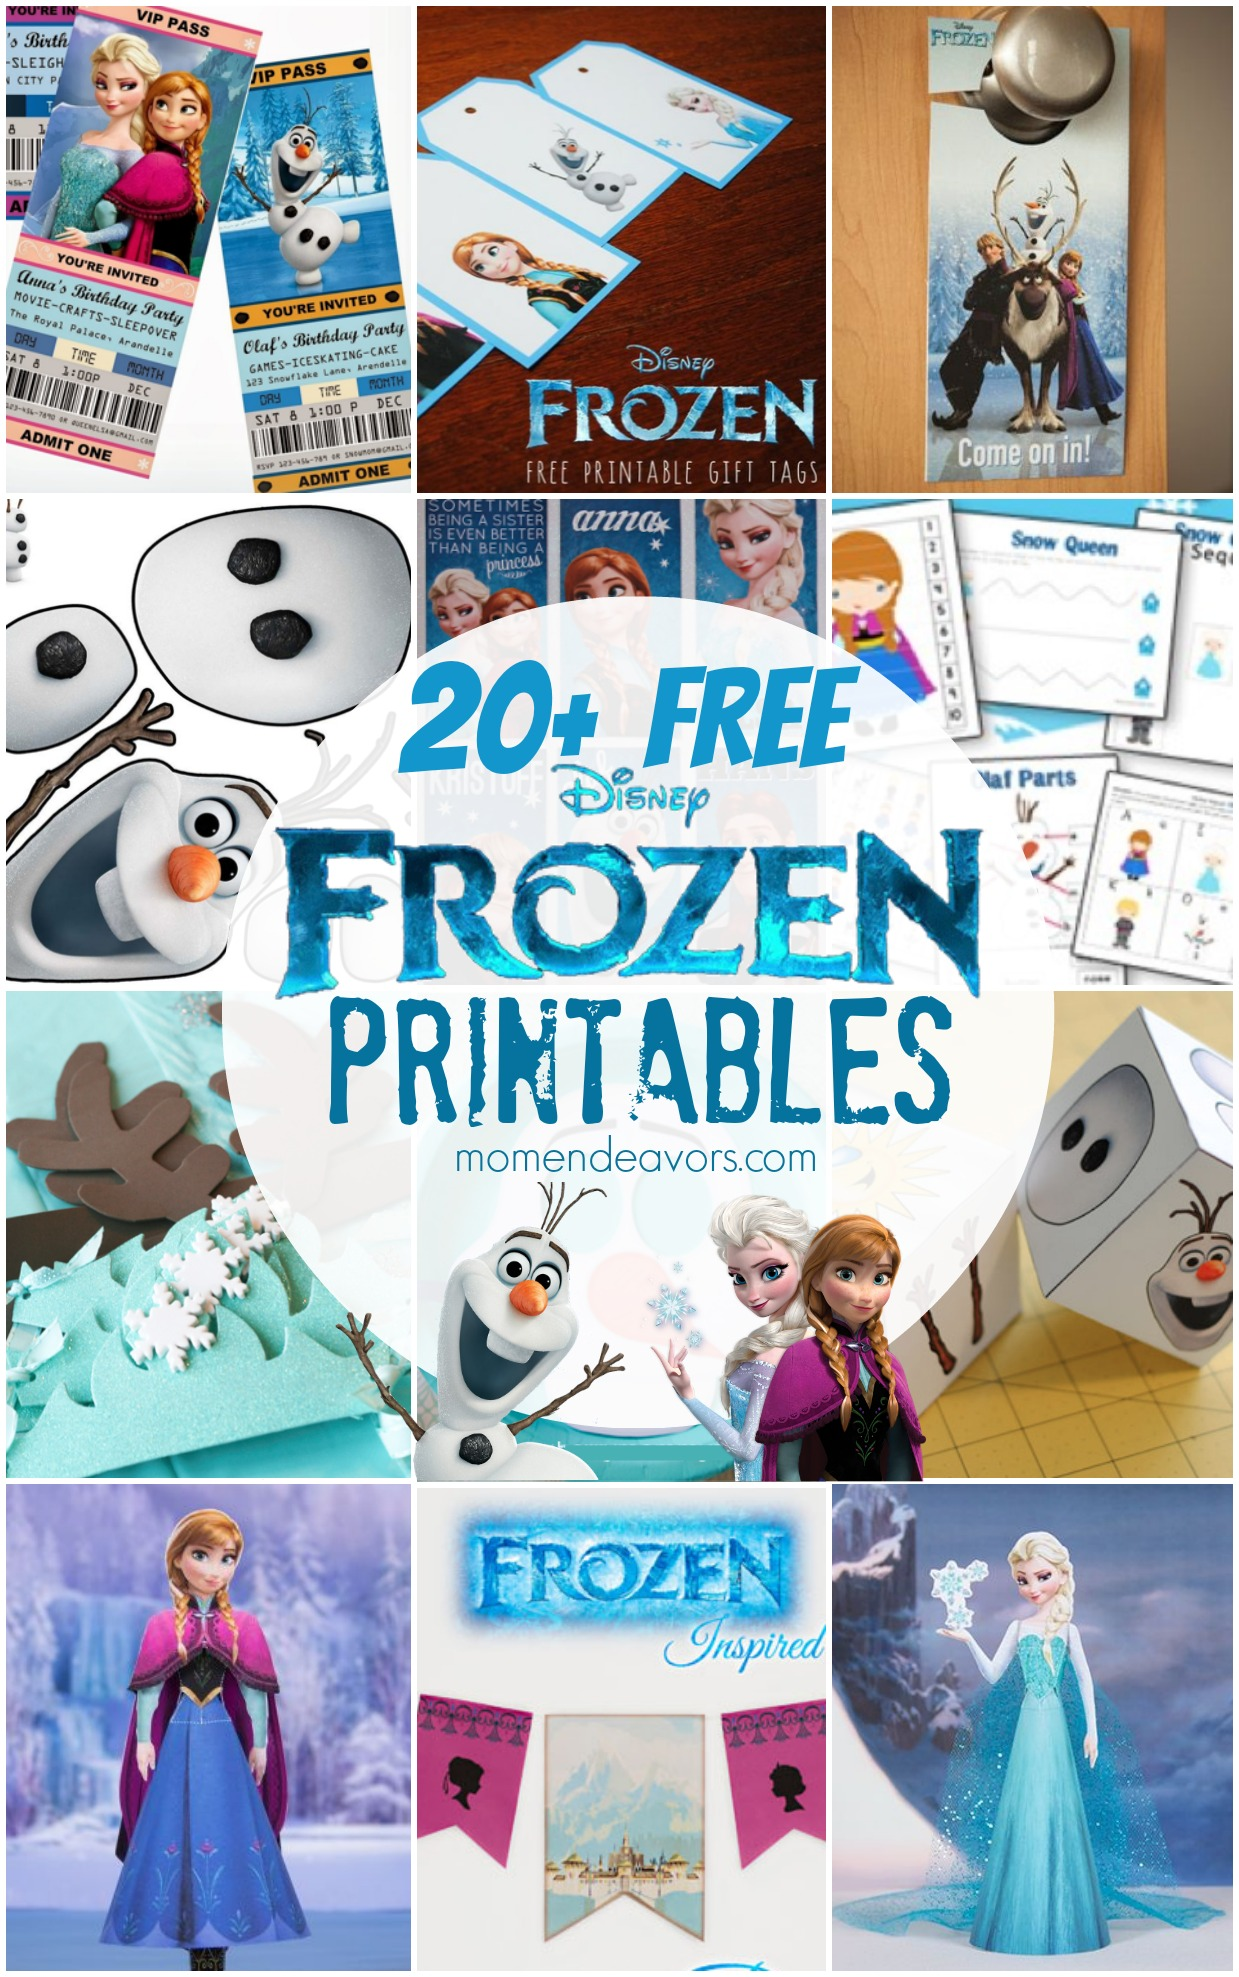 Disney FROZEN Printable Activities